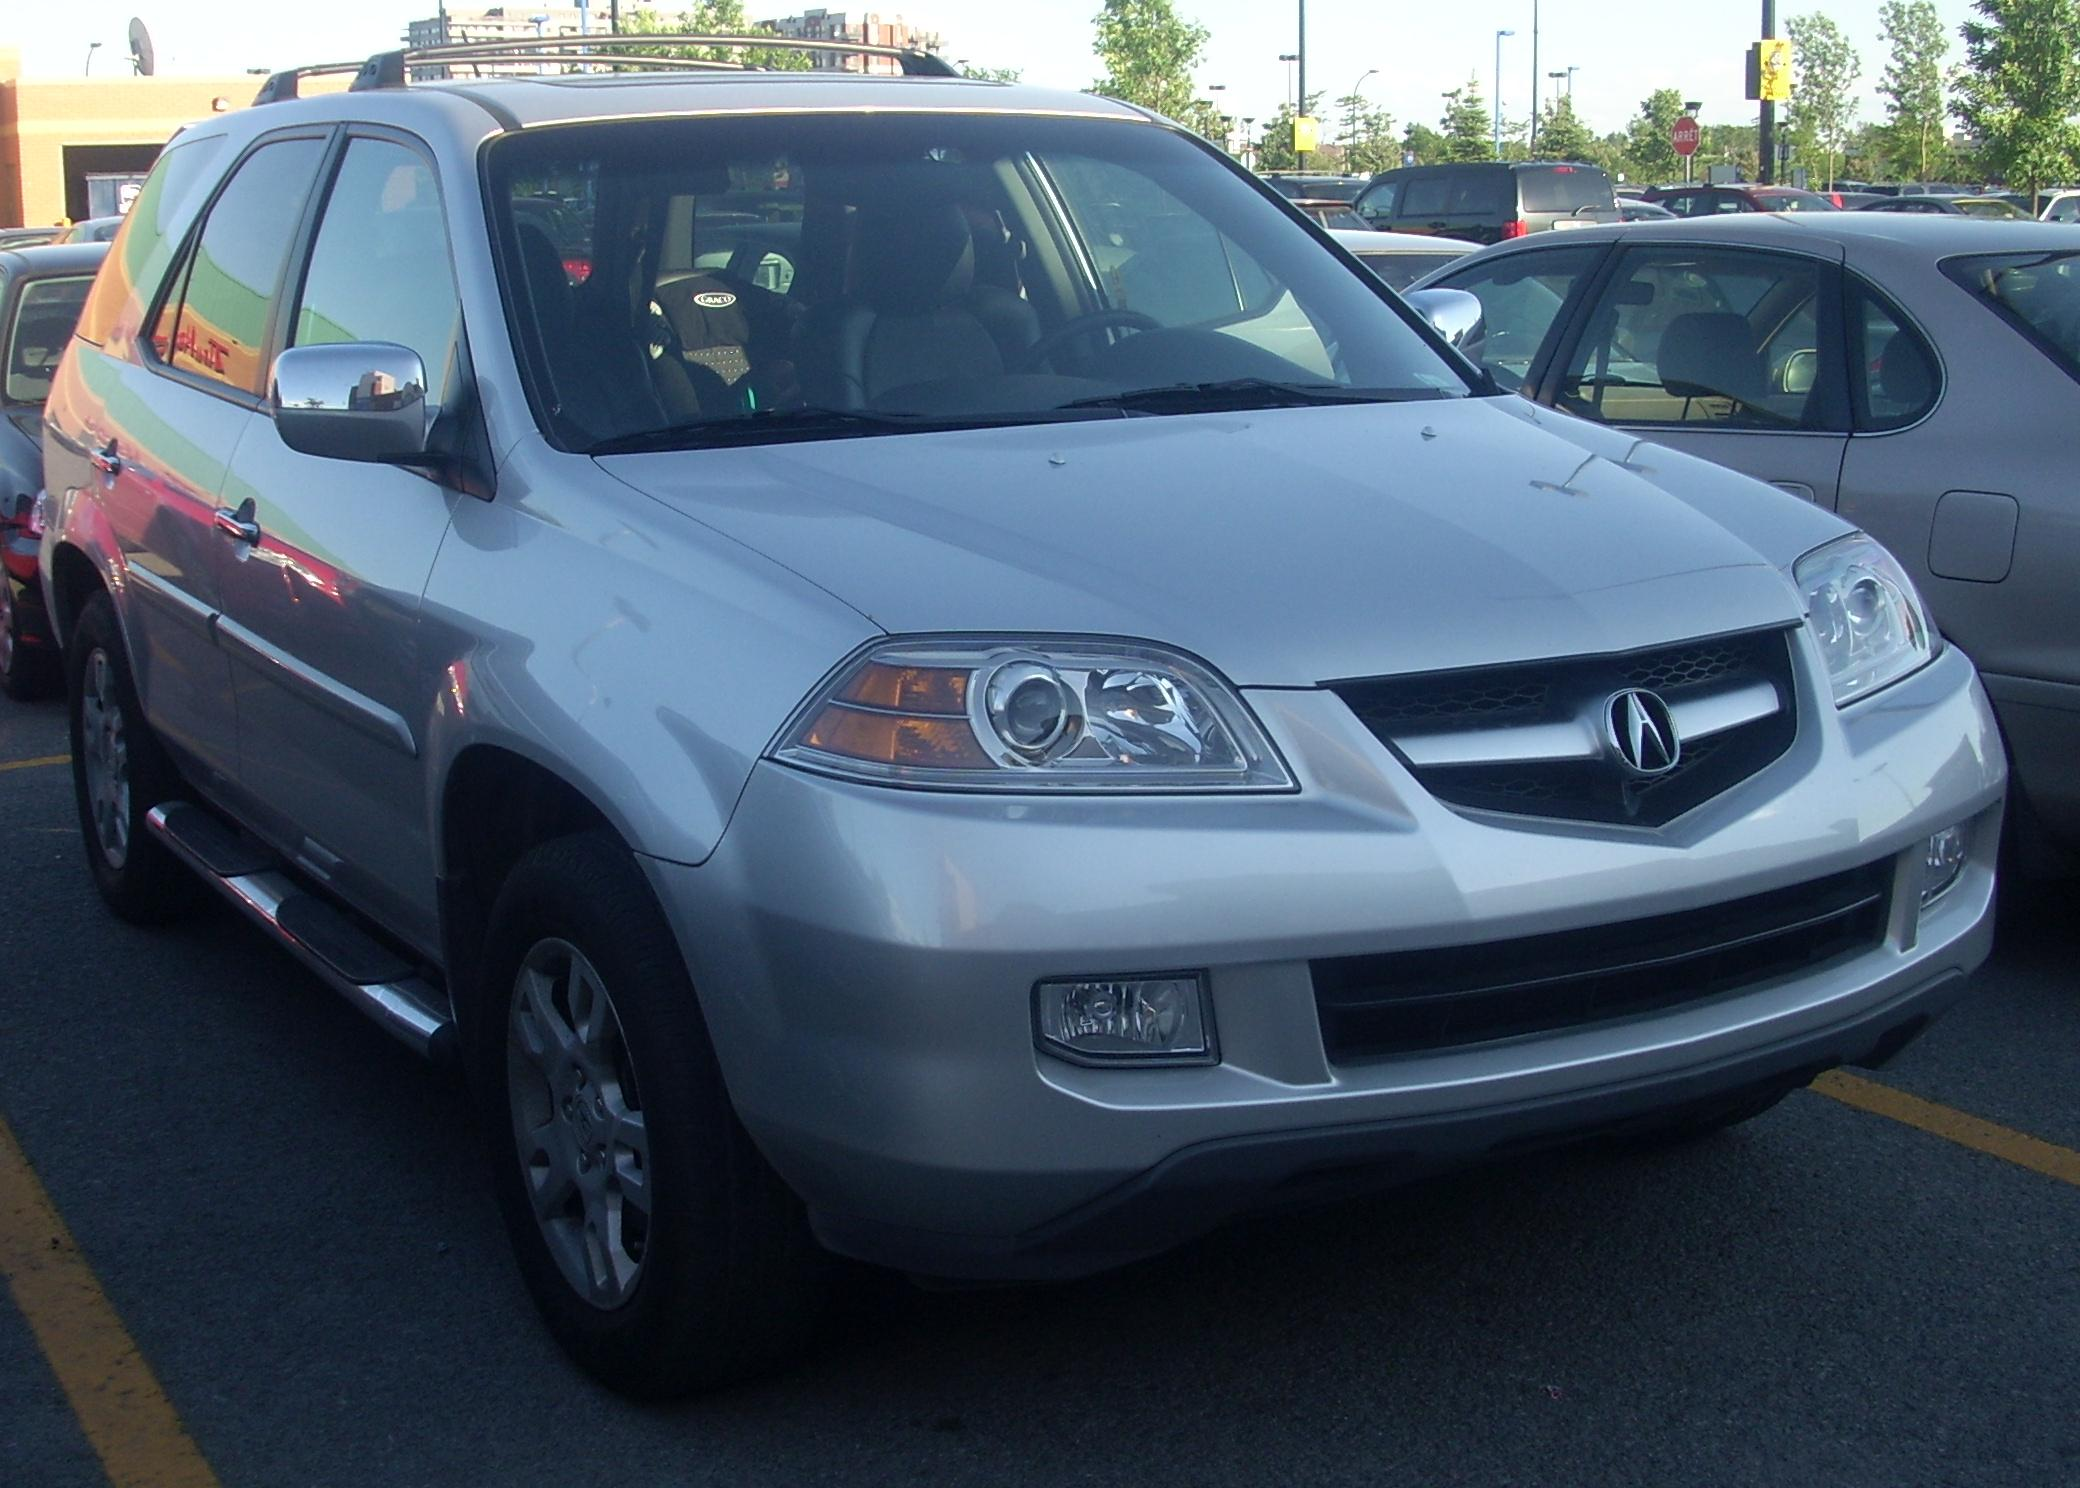 Used Cars Fort Myers >> 2006 Acura Mdx | Autos Post